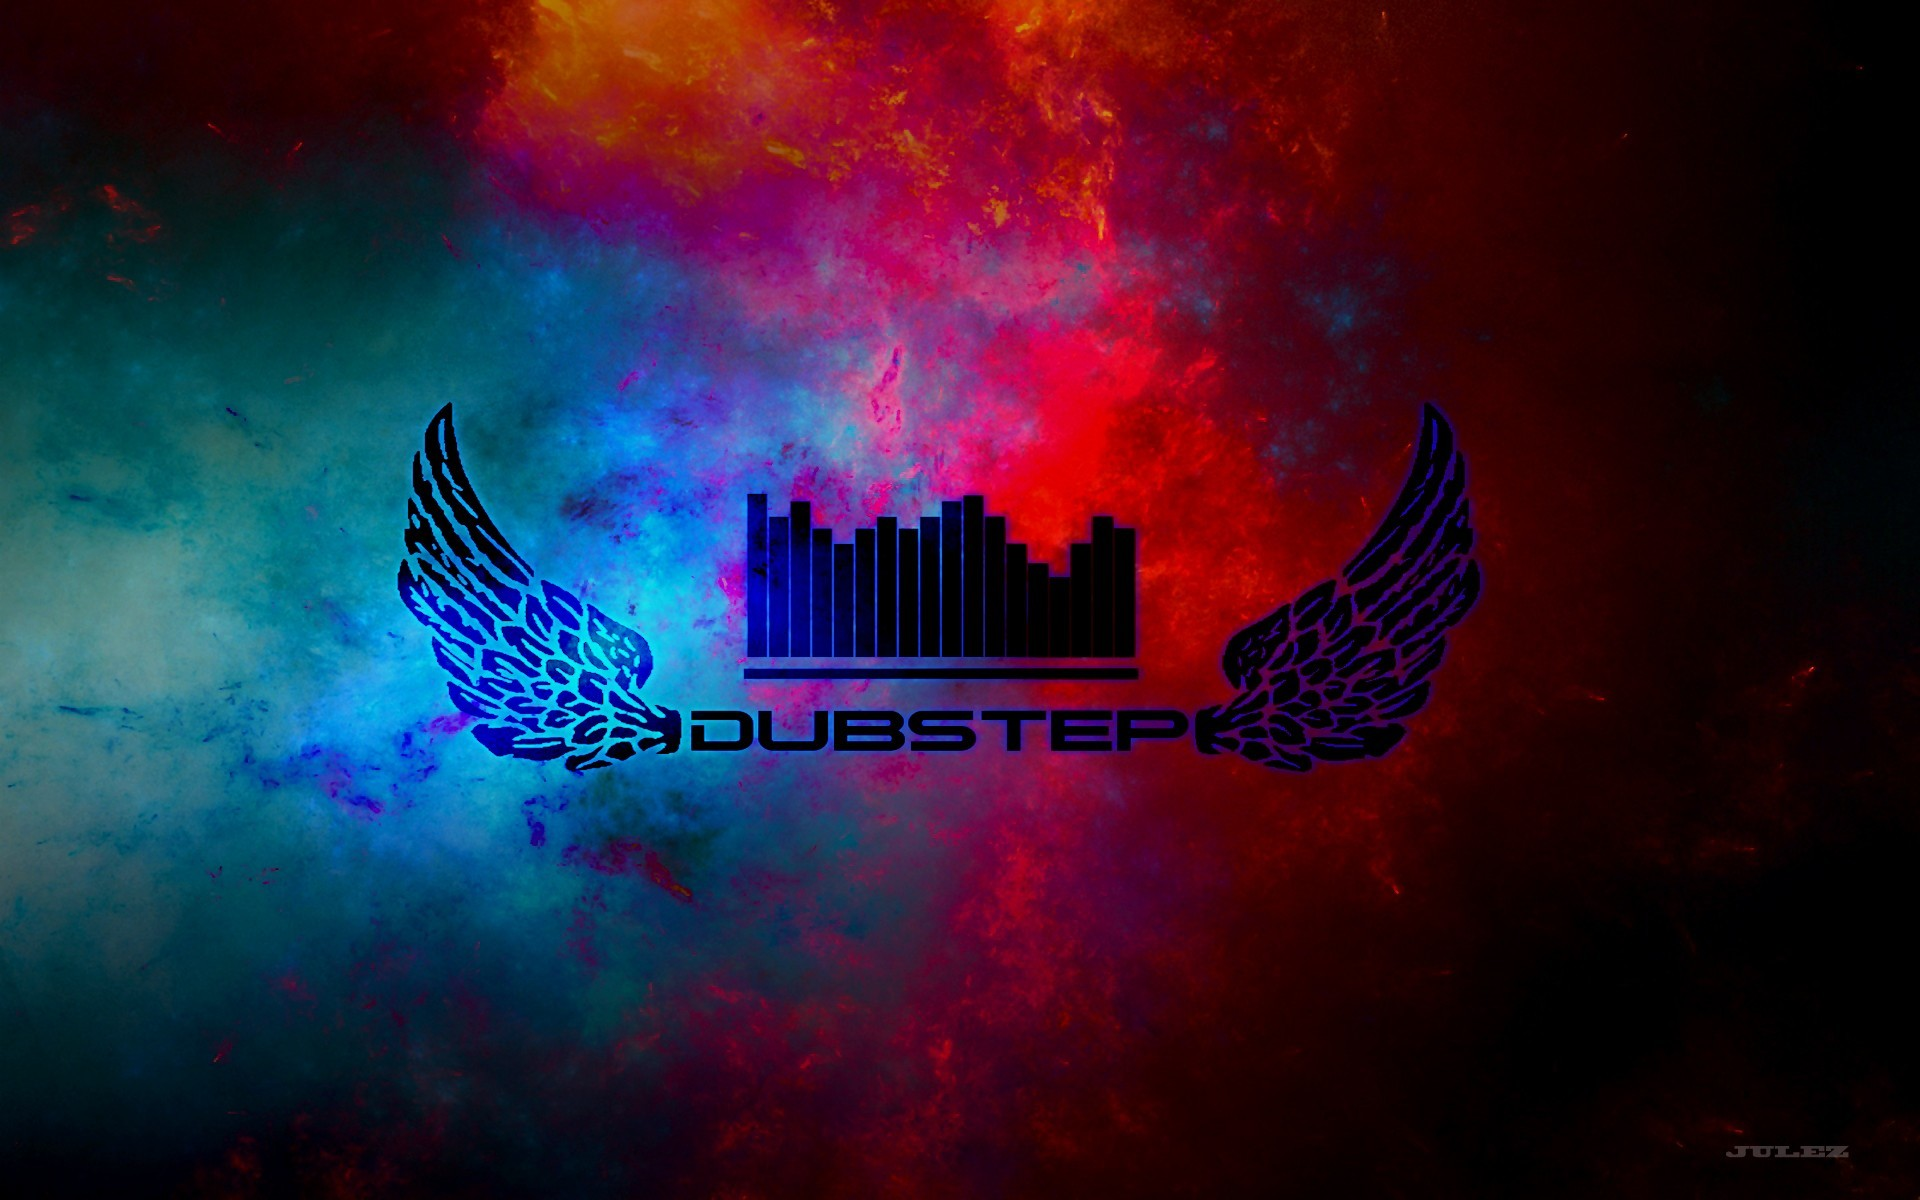 1920x1200 Dubstep Wallpaper